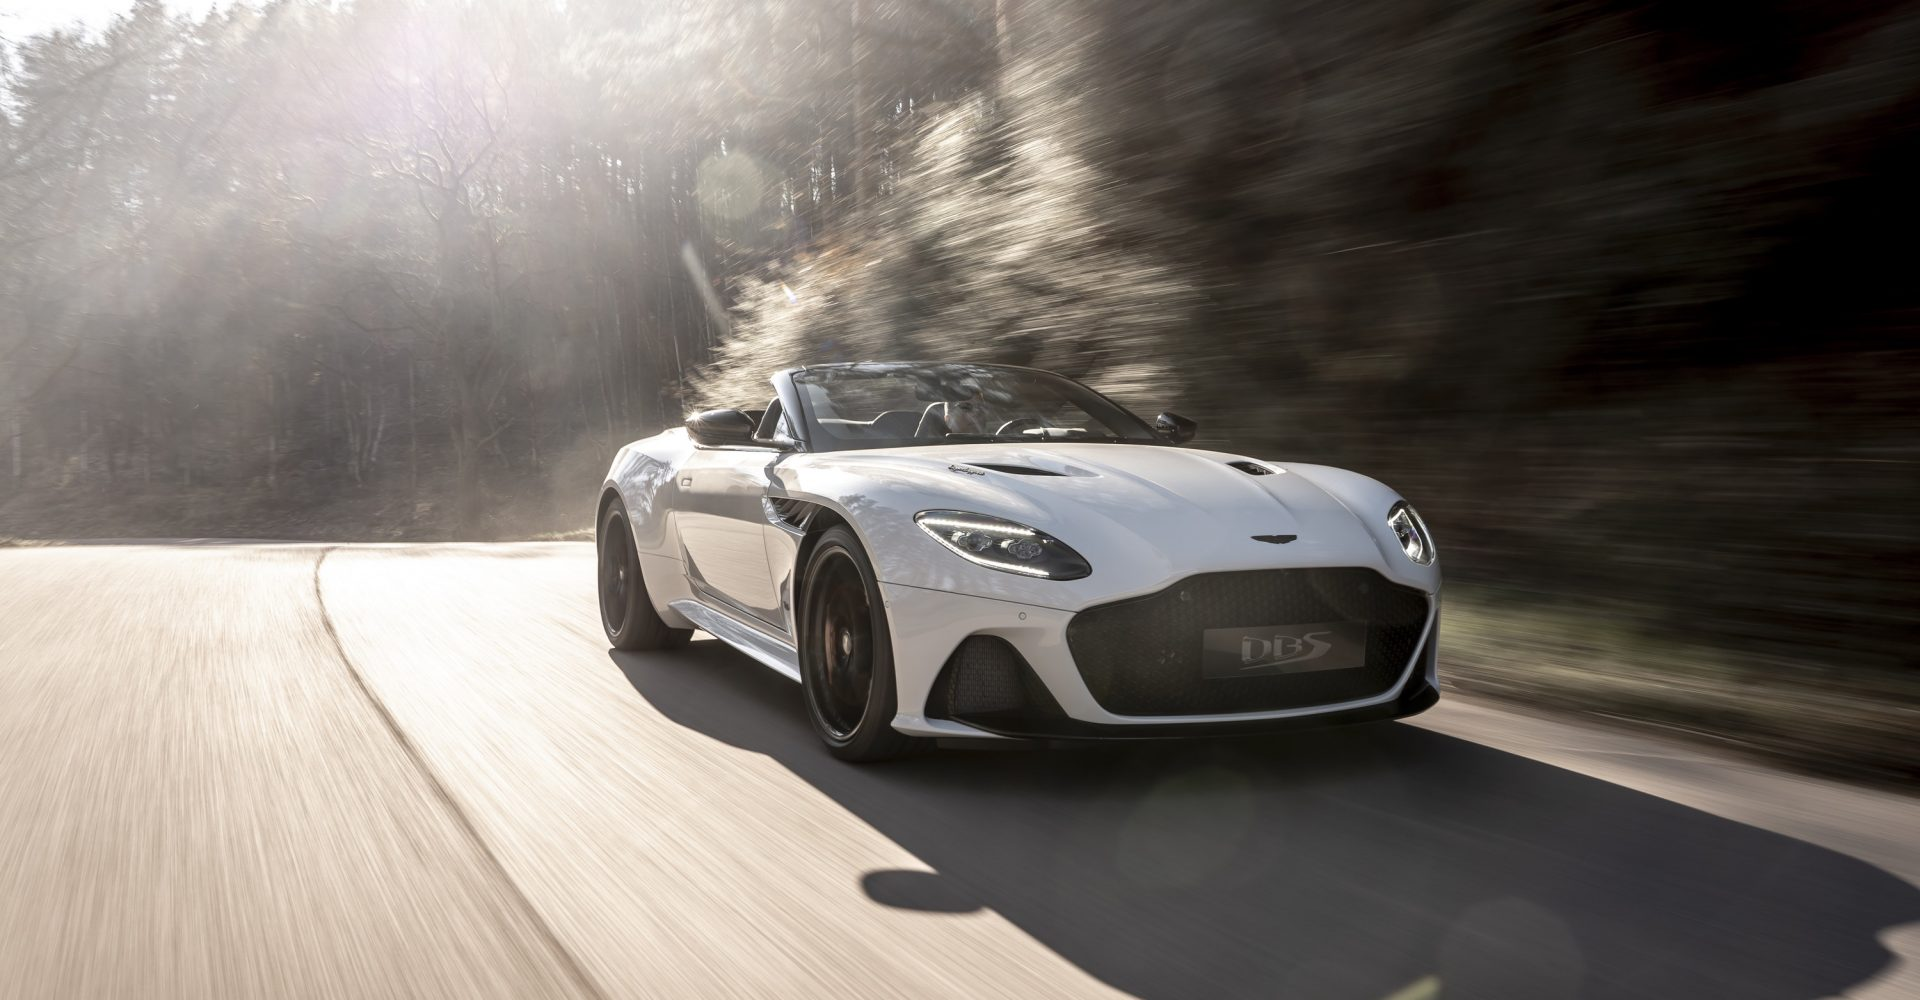 Aston Martin DBS Superleggera Volante revealed